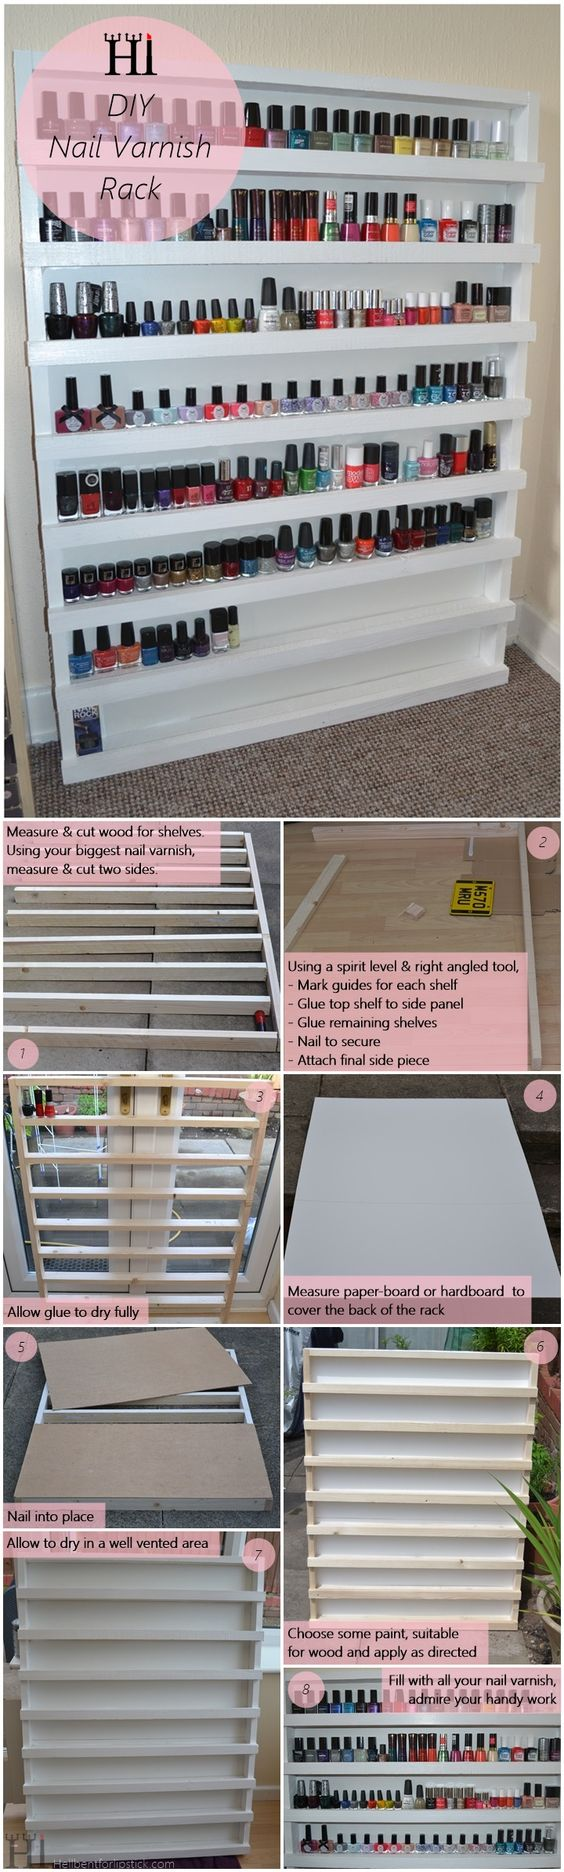 DIY Nail Varnish Rack Storage